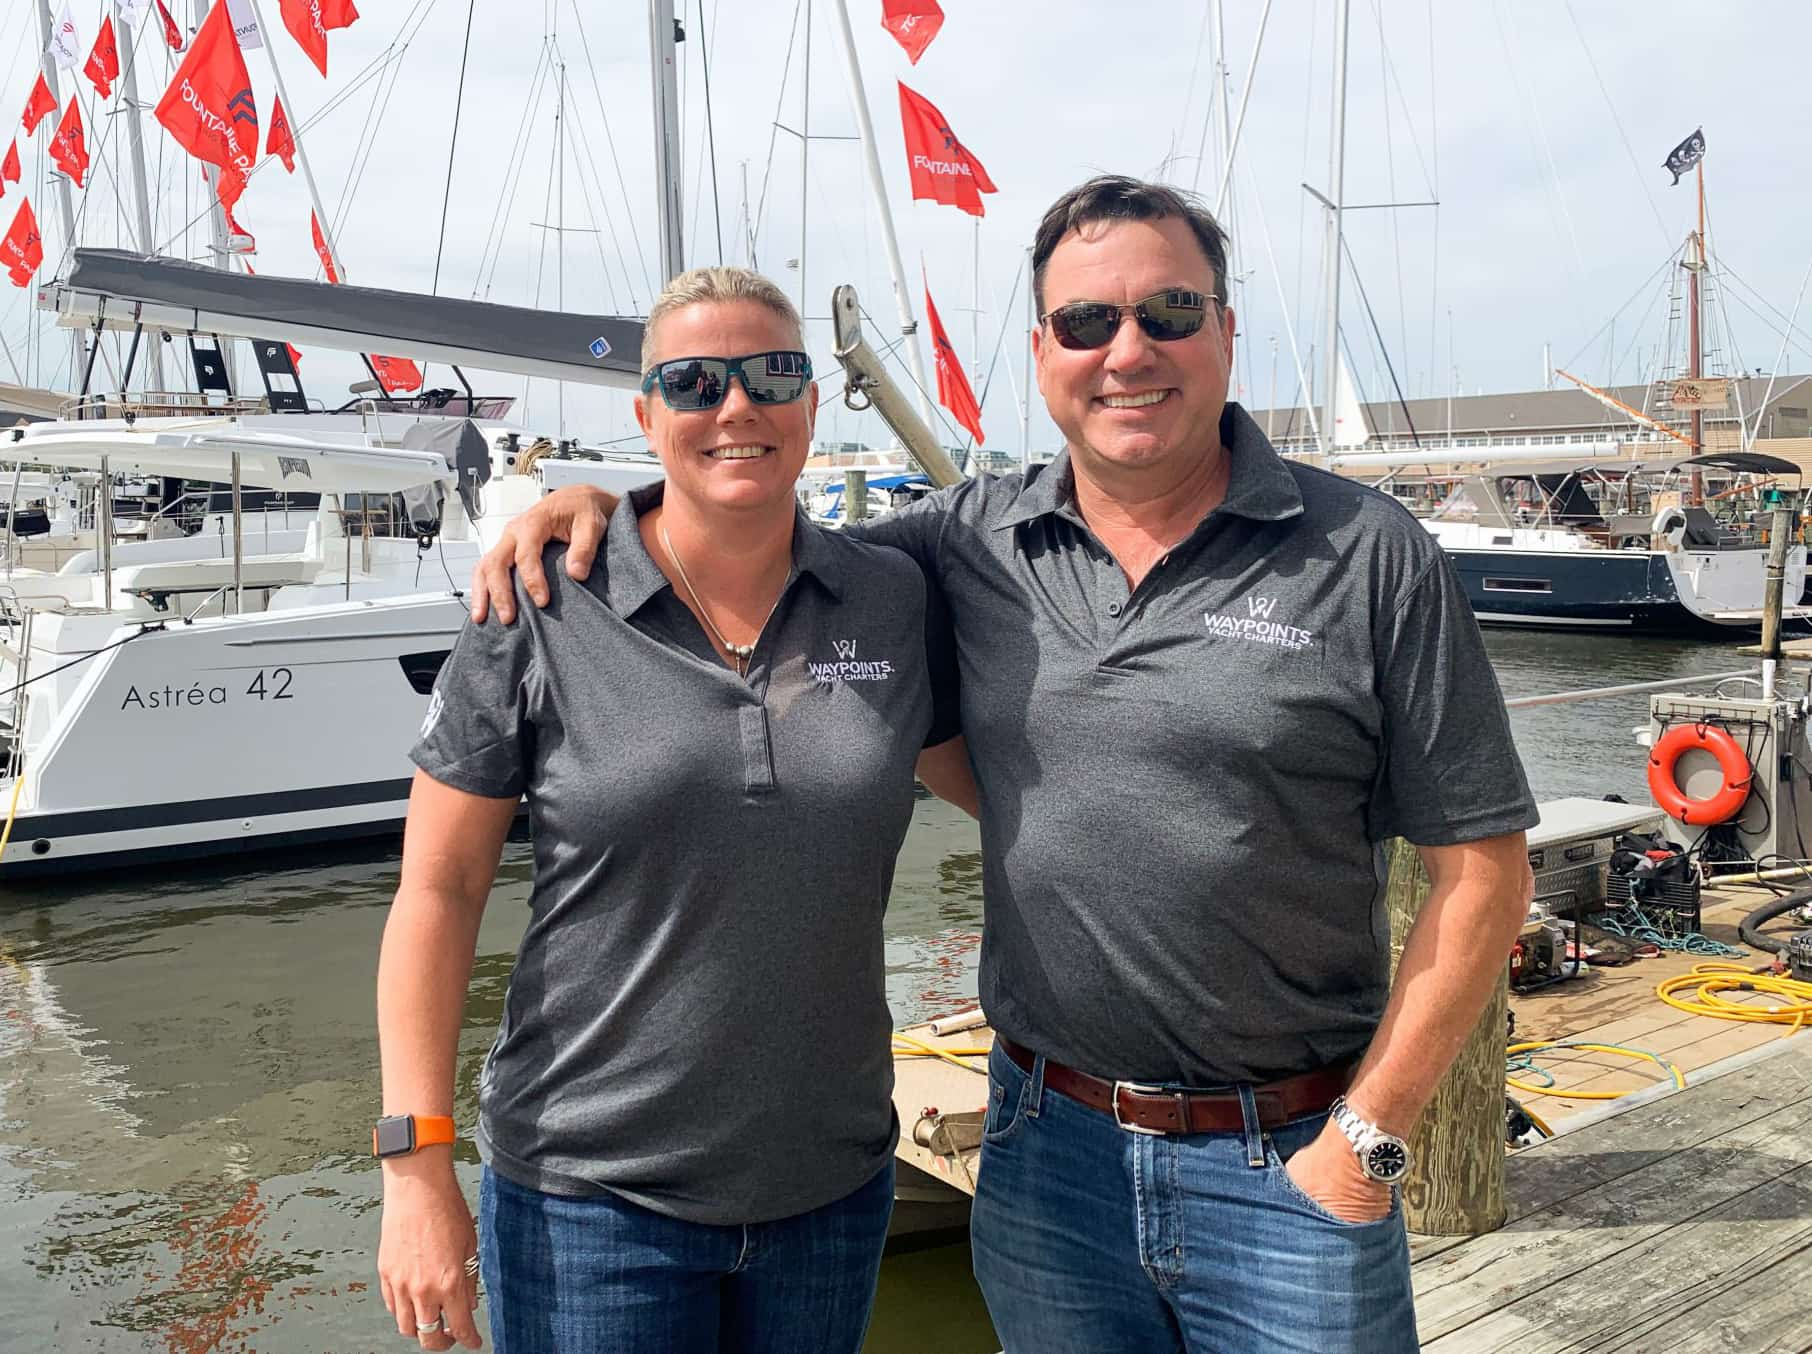 Waypoints Yacht Charters Appoints New President, Acquires Sailing Florida, and Expands to BVIs